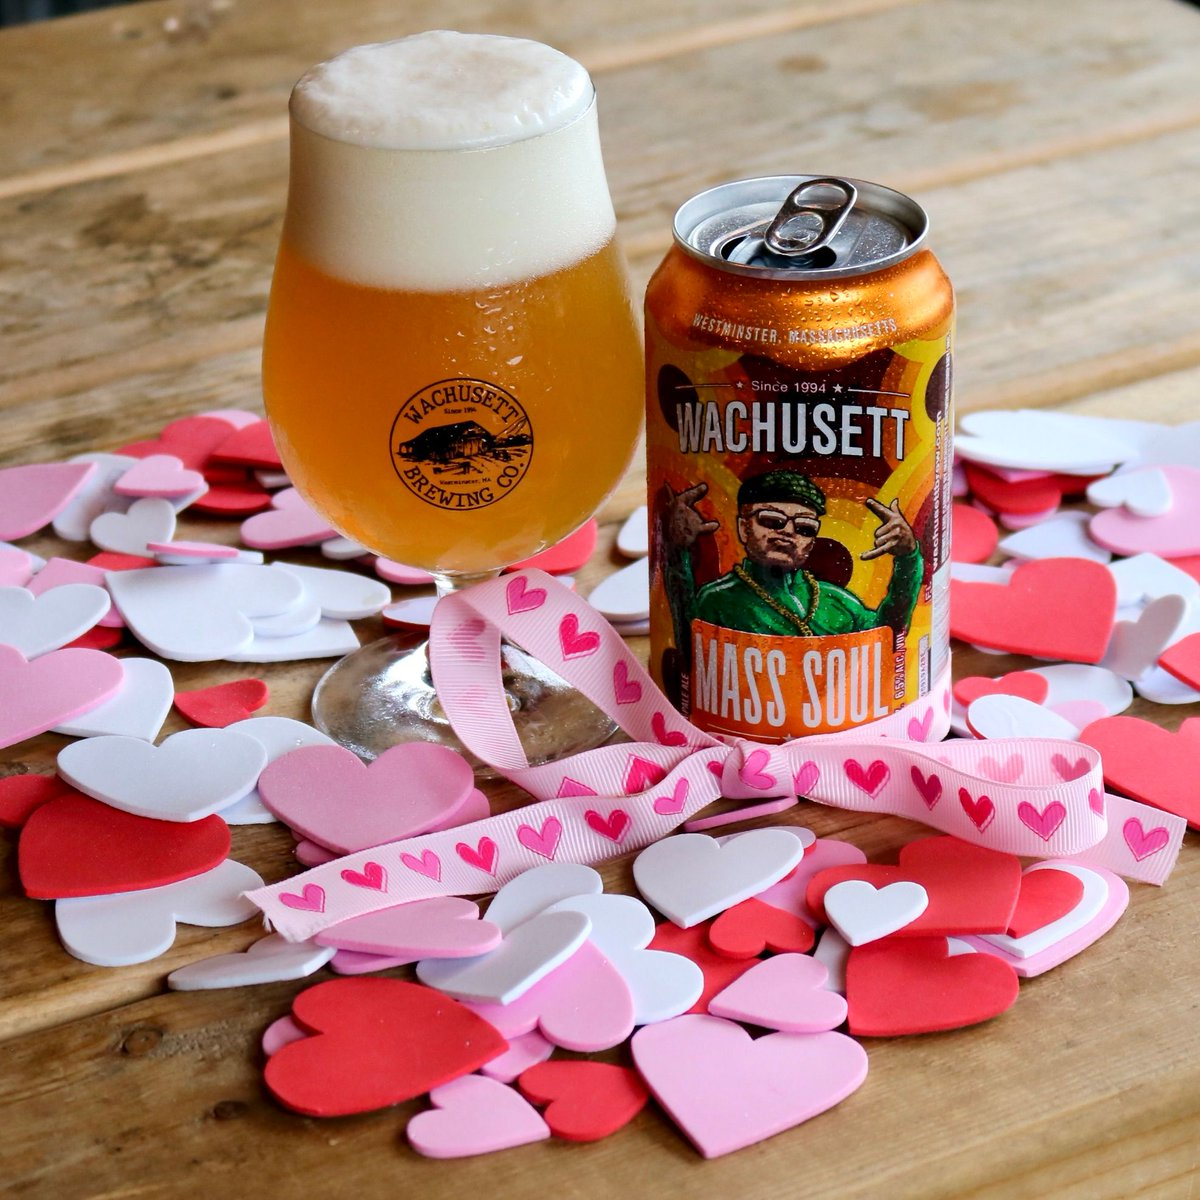 Did you know Mass Soul has a romantic side to it? This tropical IPA is filled with heart and soul making it easy to say those three little words… I'll have another!